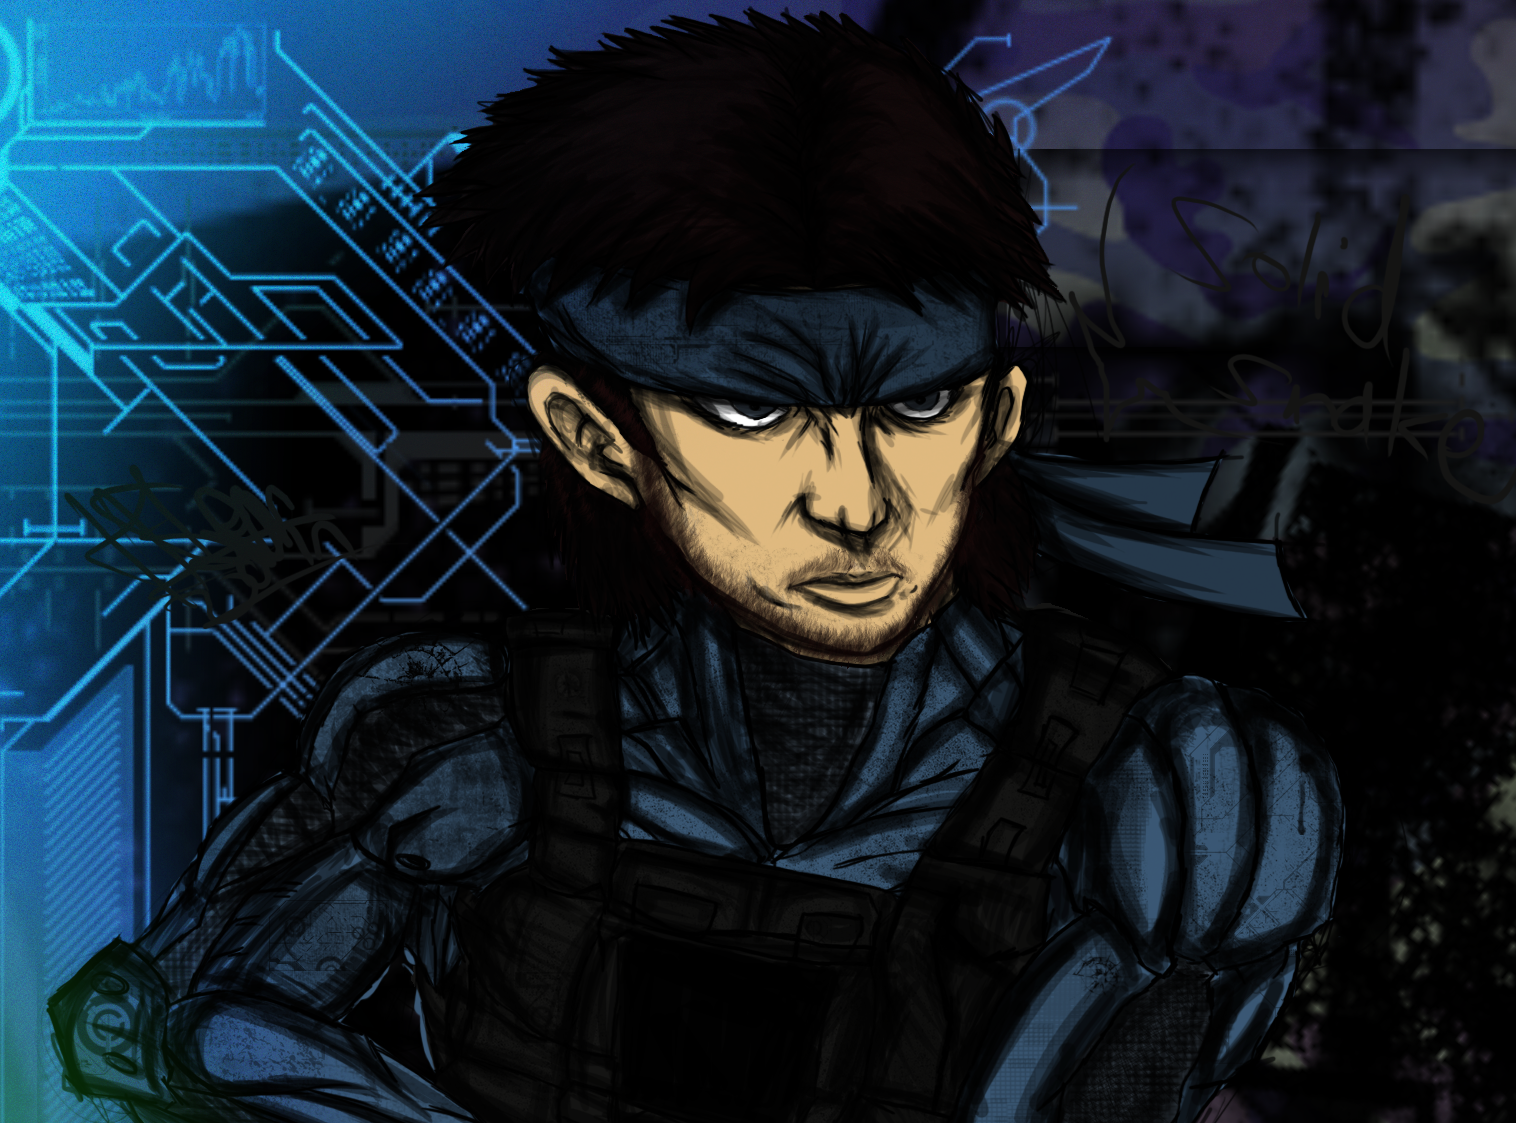 solid snake w/ octocamo